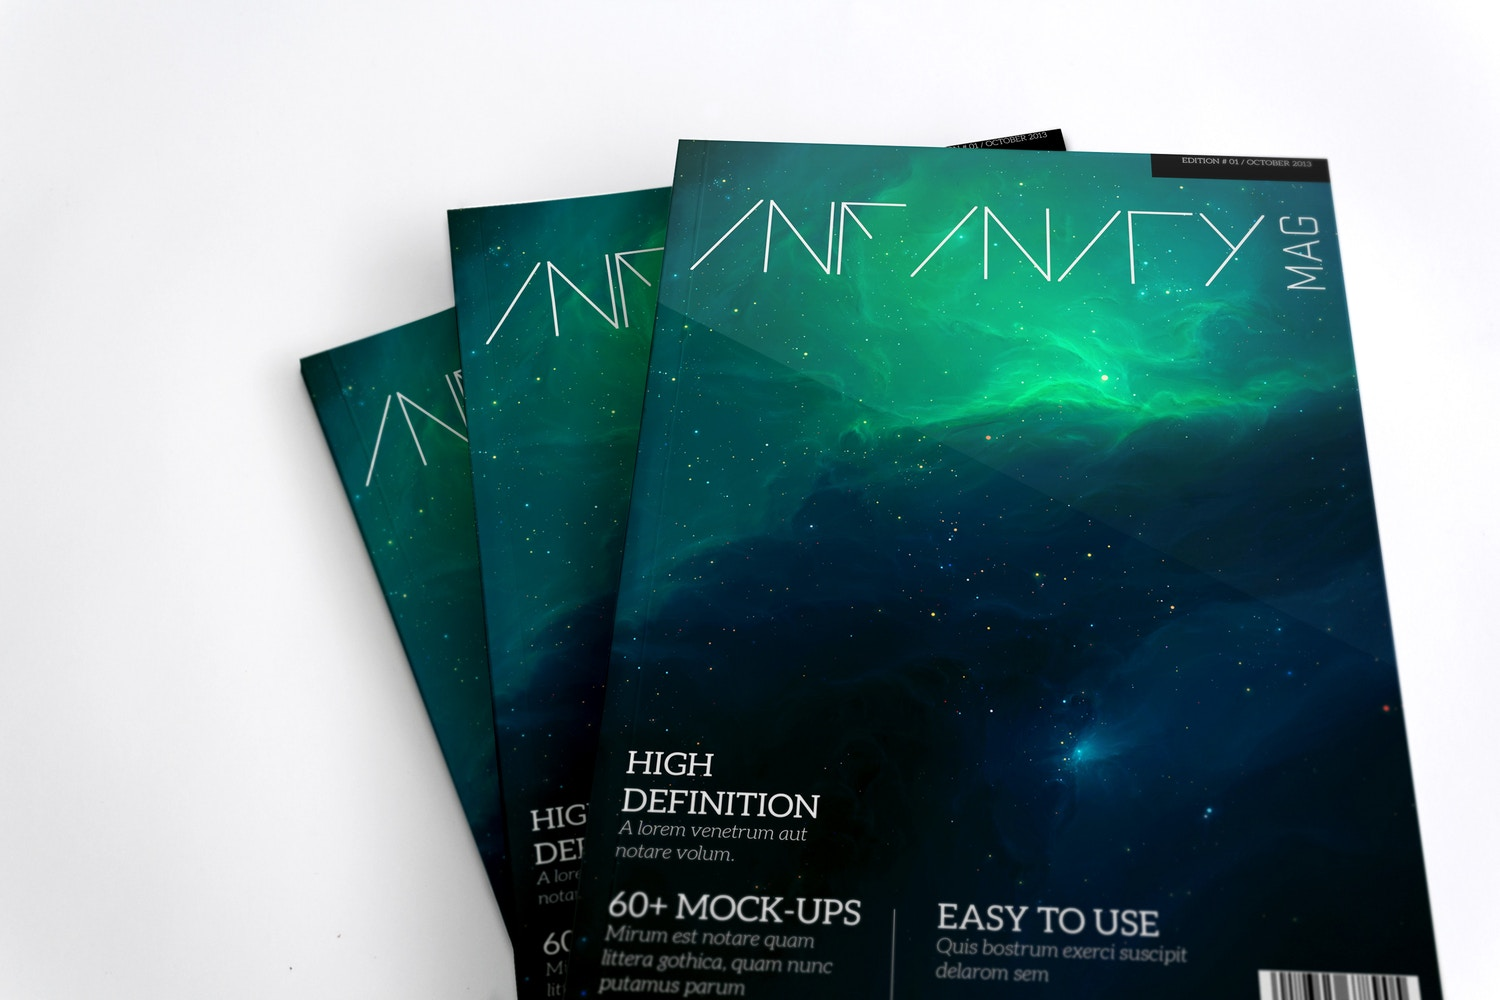 A4 Magazine Mockup Stack Covers 02 by Original Mockups on Original Mockups